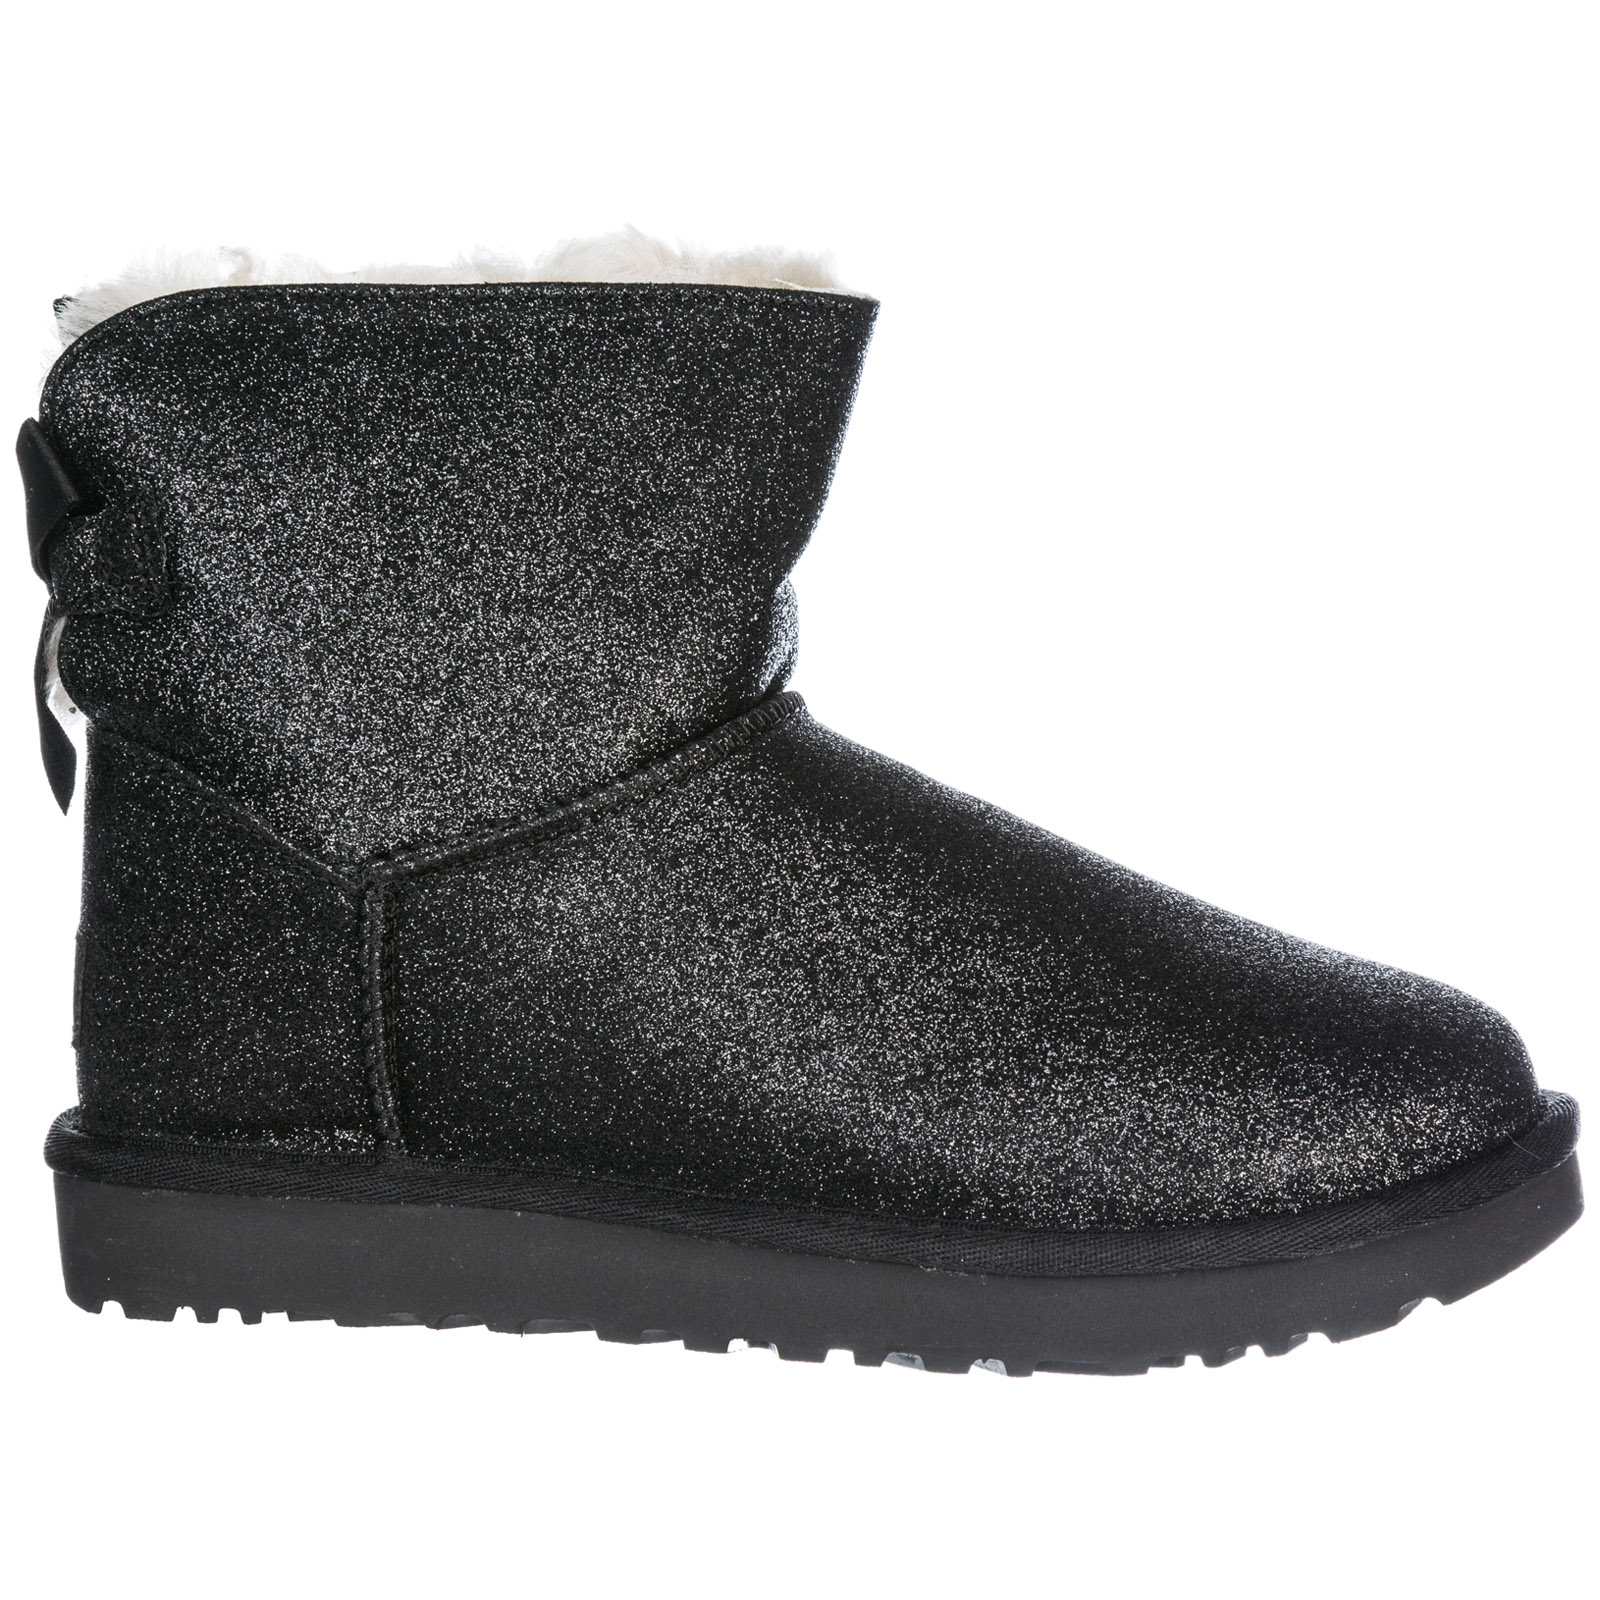 450d42b65b0 Women's boots mini bailey bow sparkle